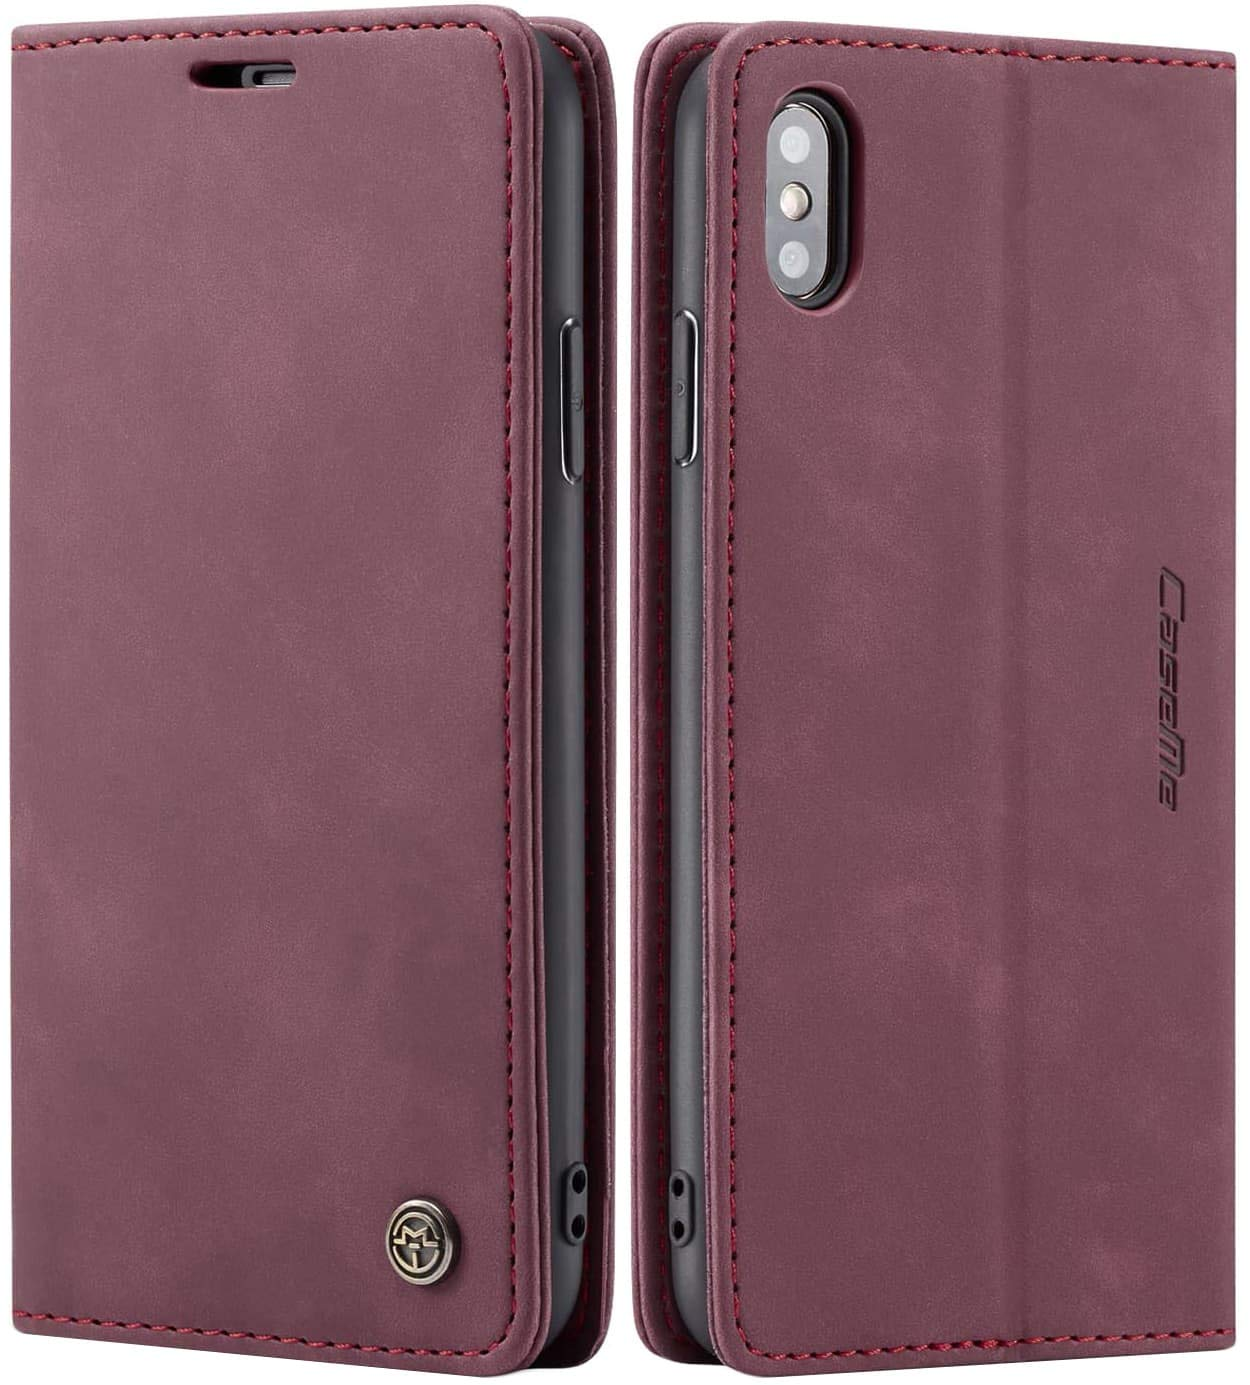 SINIANL Case for iPhone XS Max/XR/XS/X/8/8 Plus/7/7 Plus/6/6 Plus Leather Case Folio Flip Cover with Credit Card Holder